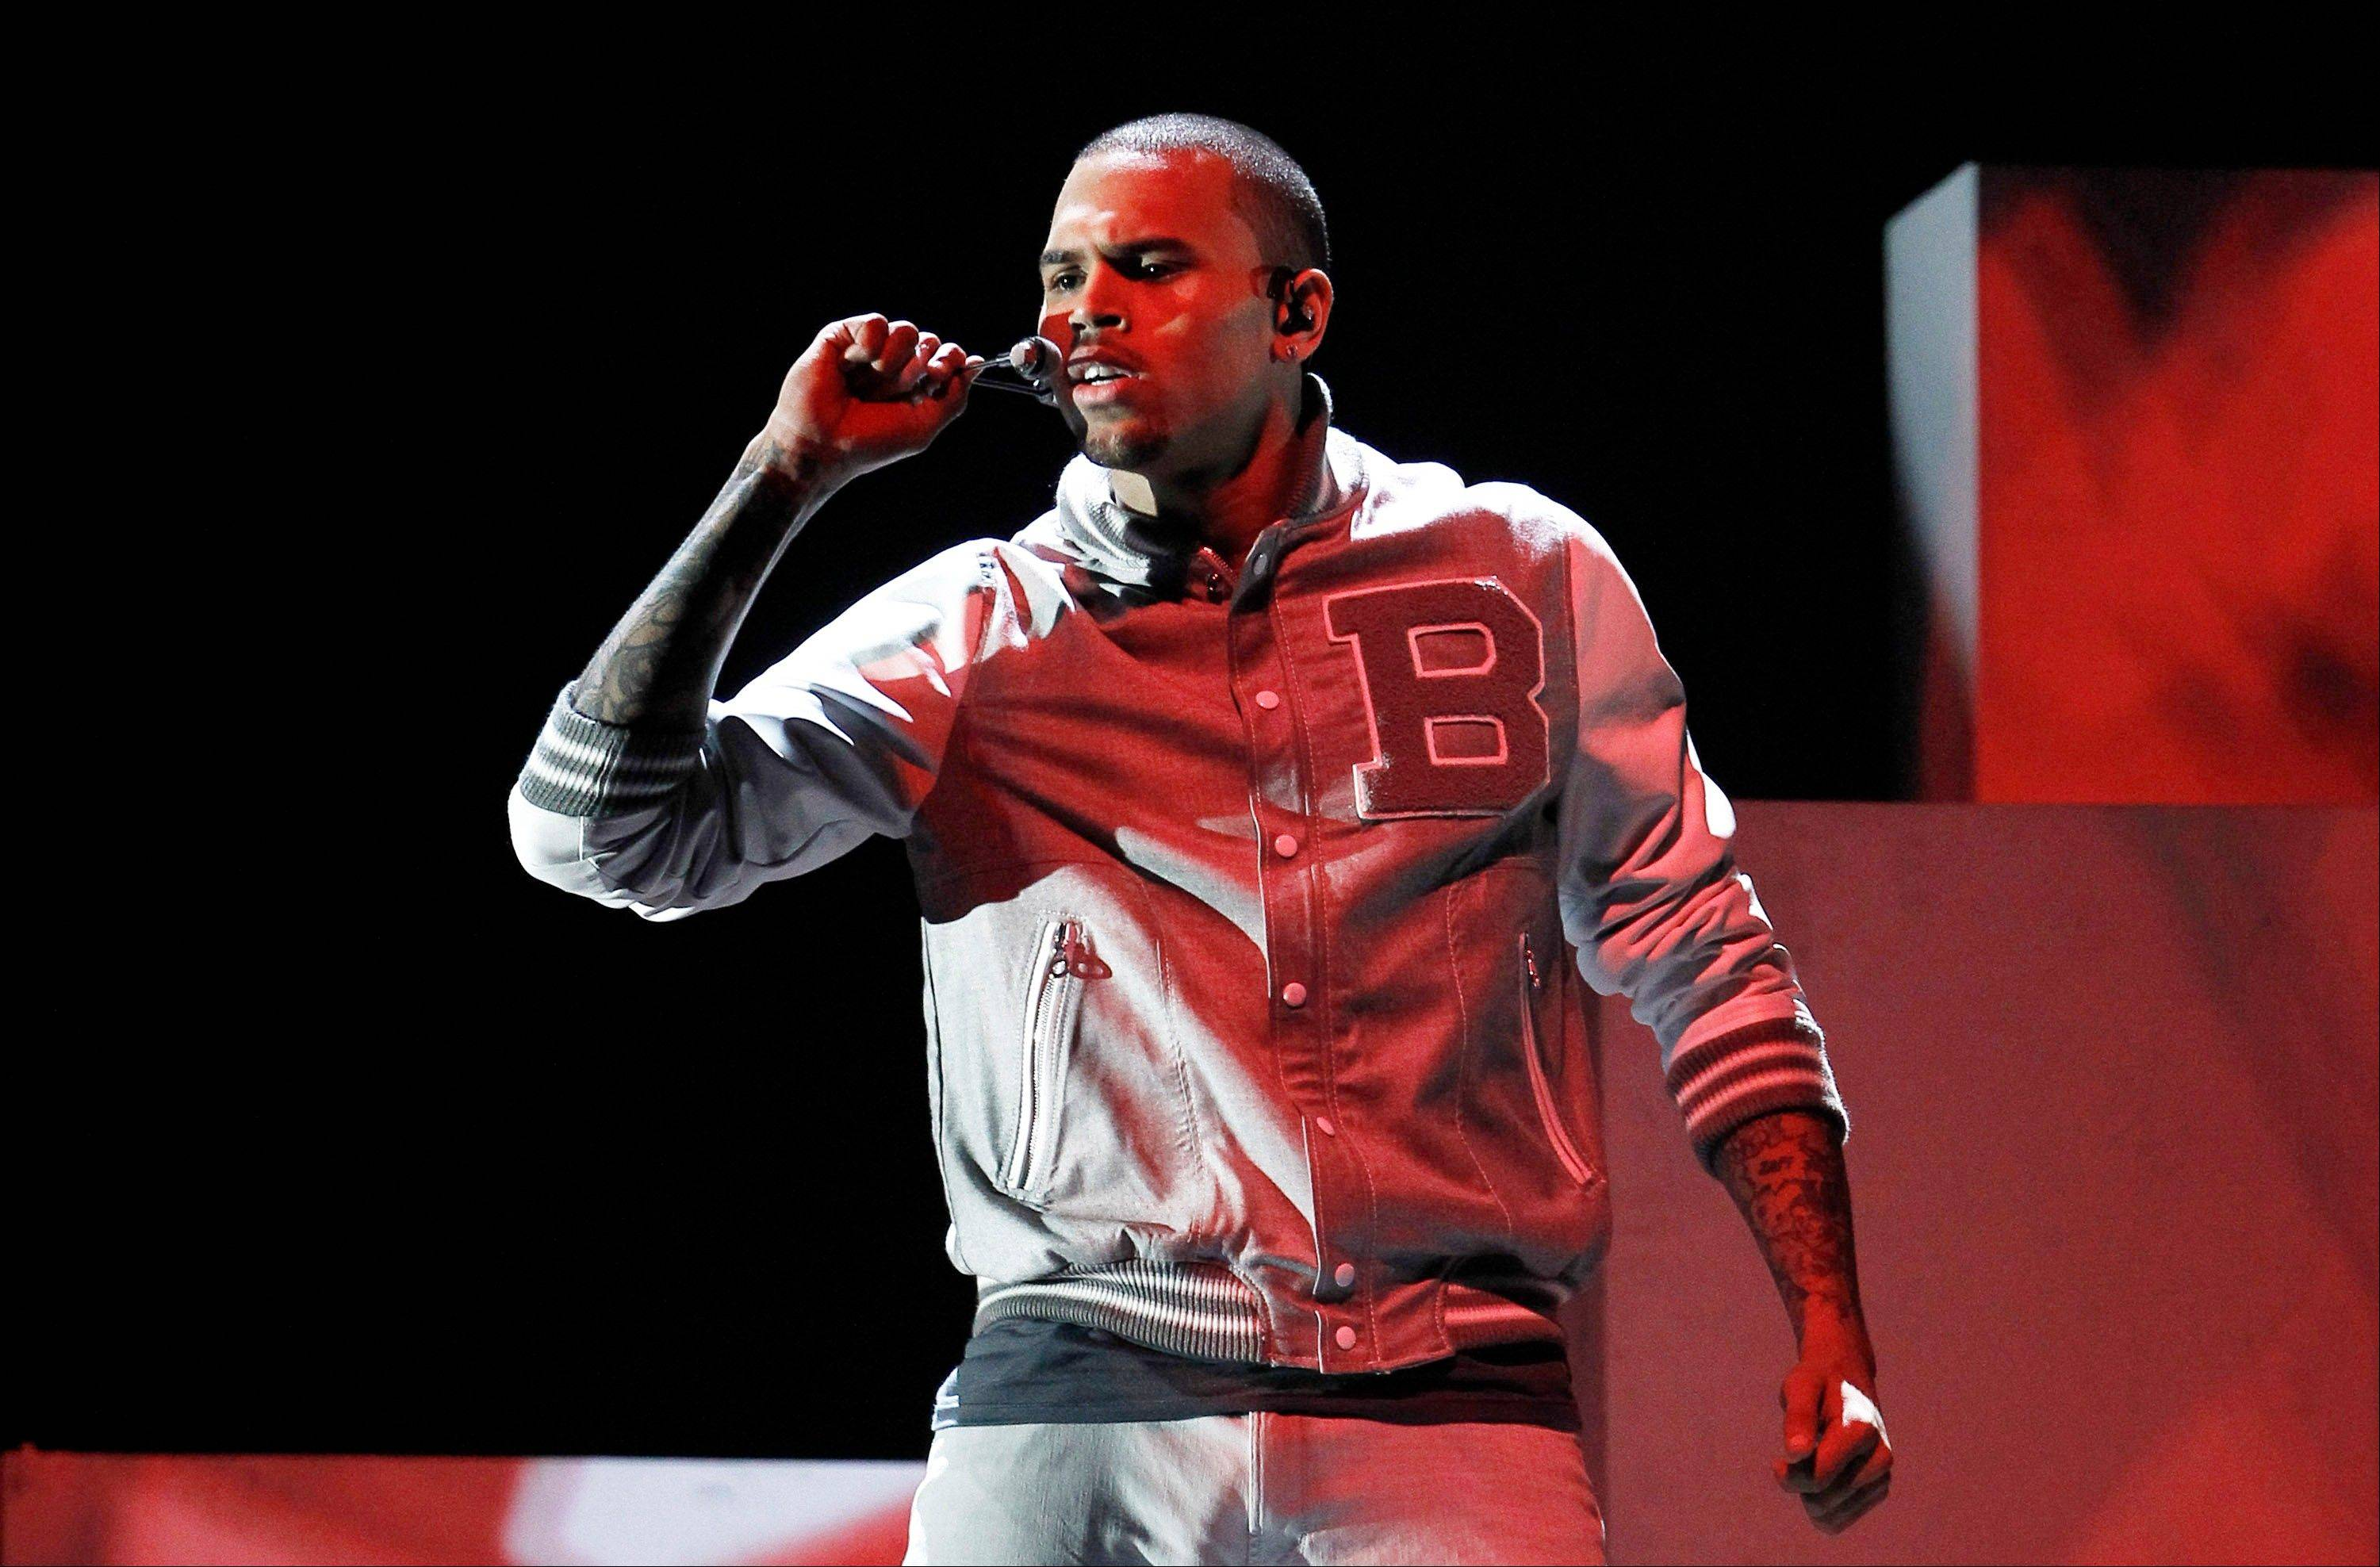 Chris Brown, shown performing during last year's Grammys, returned to a Los Angeles court on Wednesday for a hearing in which prosecutors wanted a judge to revoke his probation and order him to redo his community labor because of concerns about the accuracy of records provided by Virginia authorities. Brown remains on probation for the 2009 beating of Rihanna.